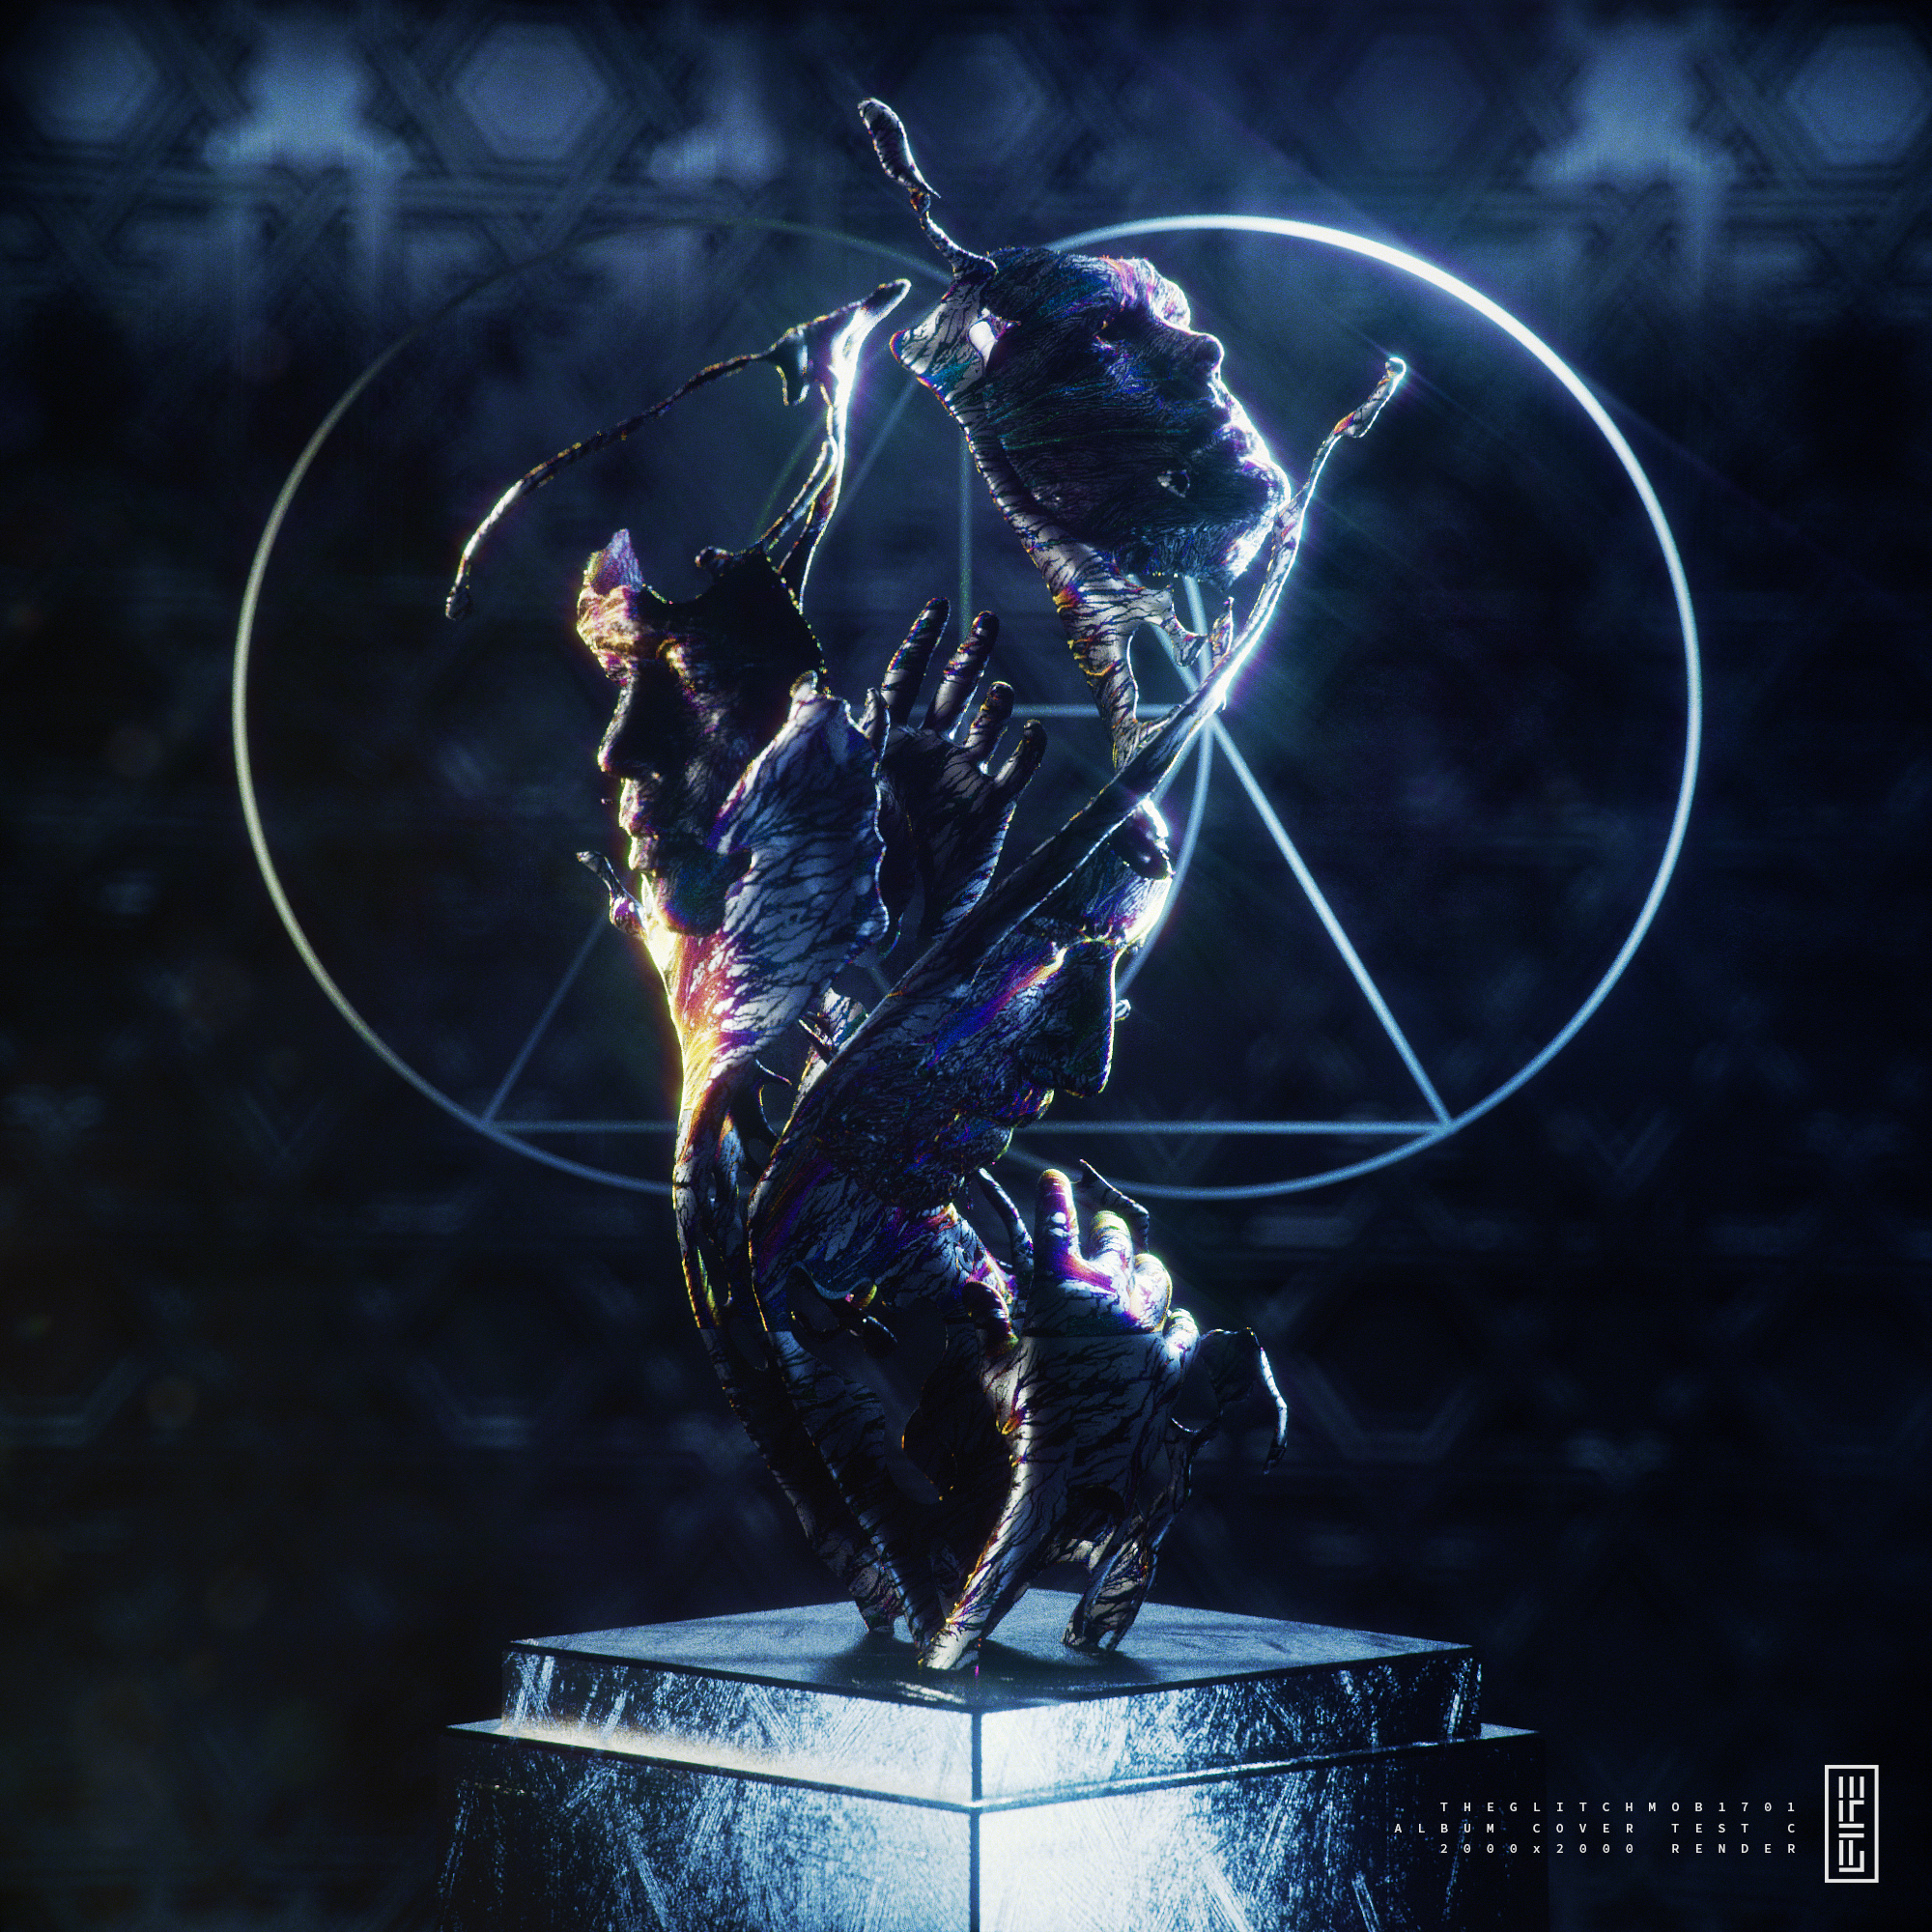 TheGlitchMob_AlbumCoverTestC_Full.png